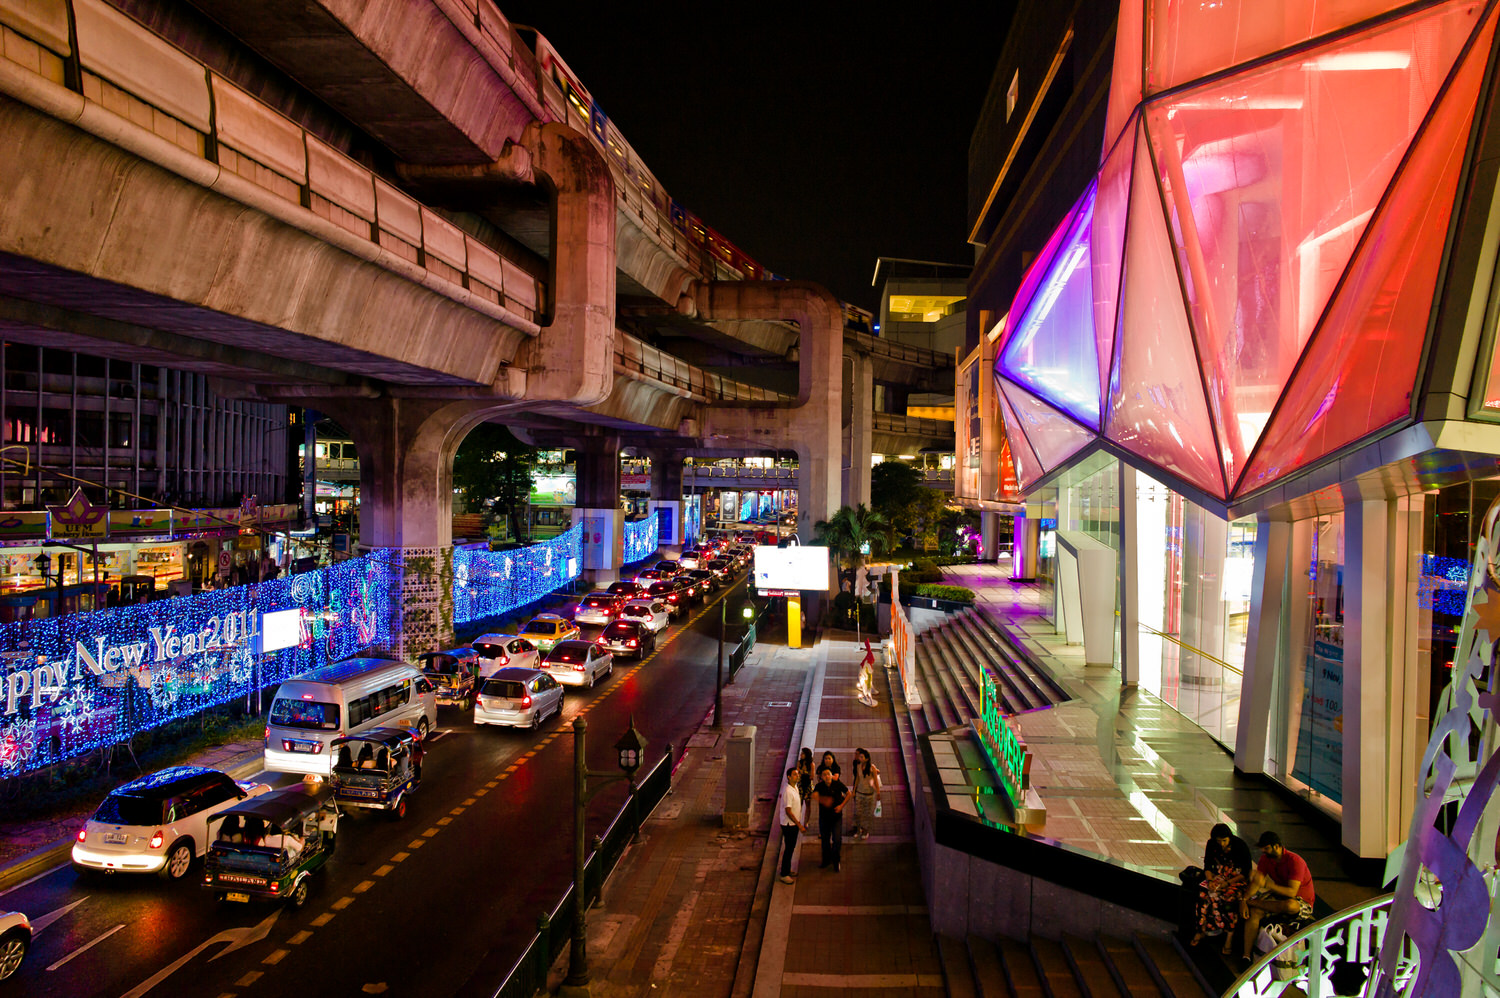 Bangkok at night is a surreal place. It's hot, it's humidy and it's chaotic. Yet a strange kind of beauty exists, in those moments of stillness between the noise and traffic.